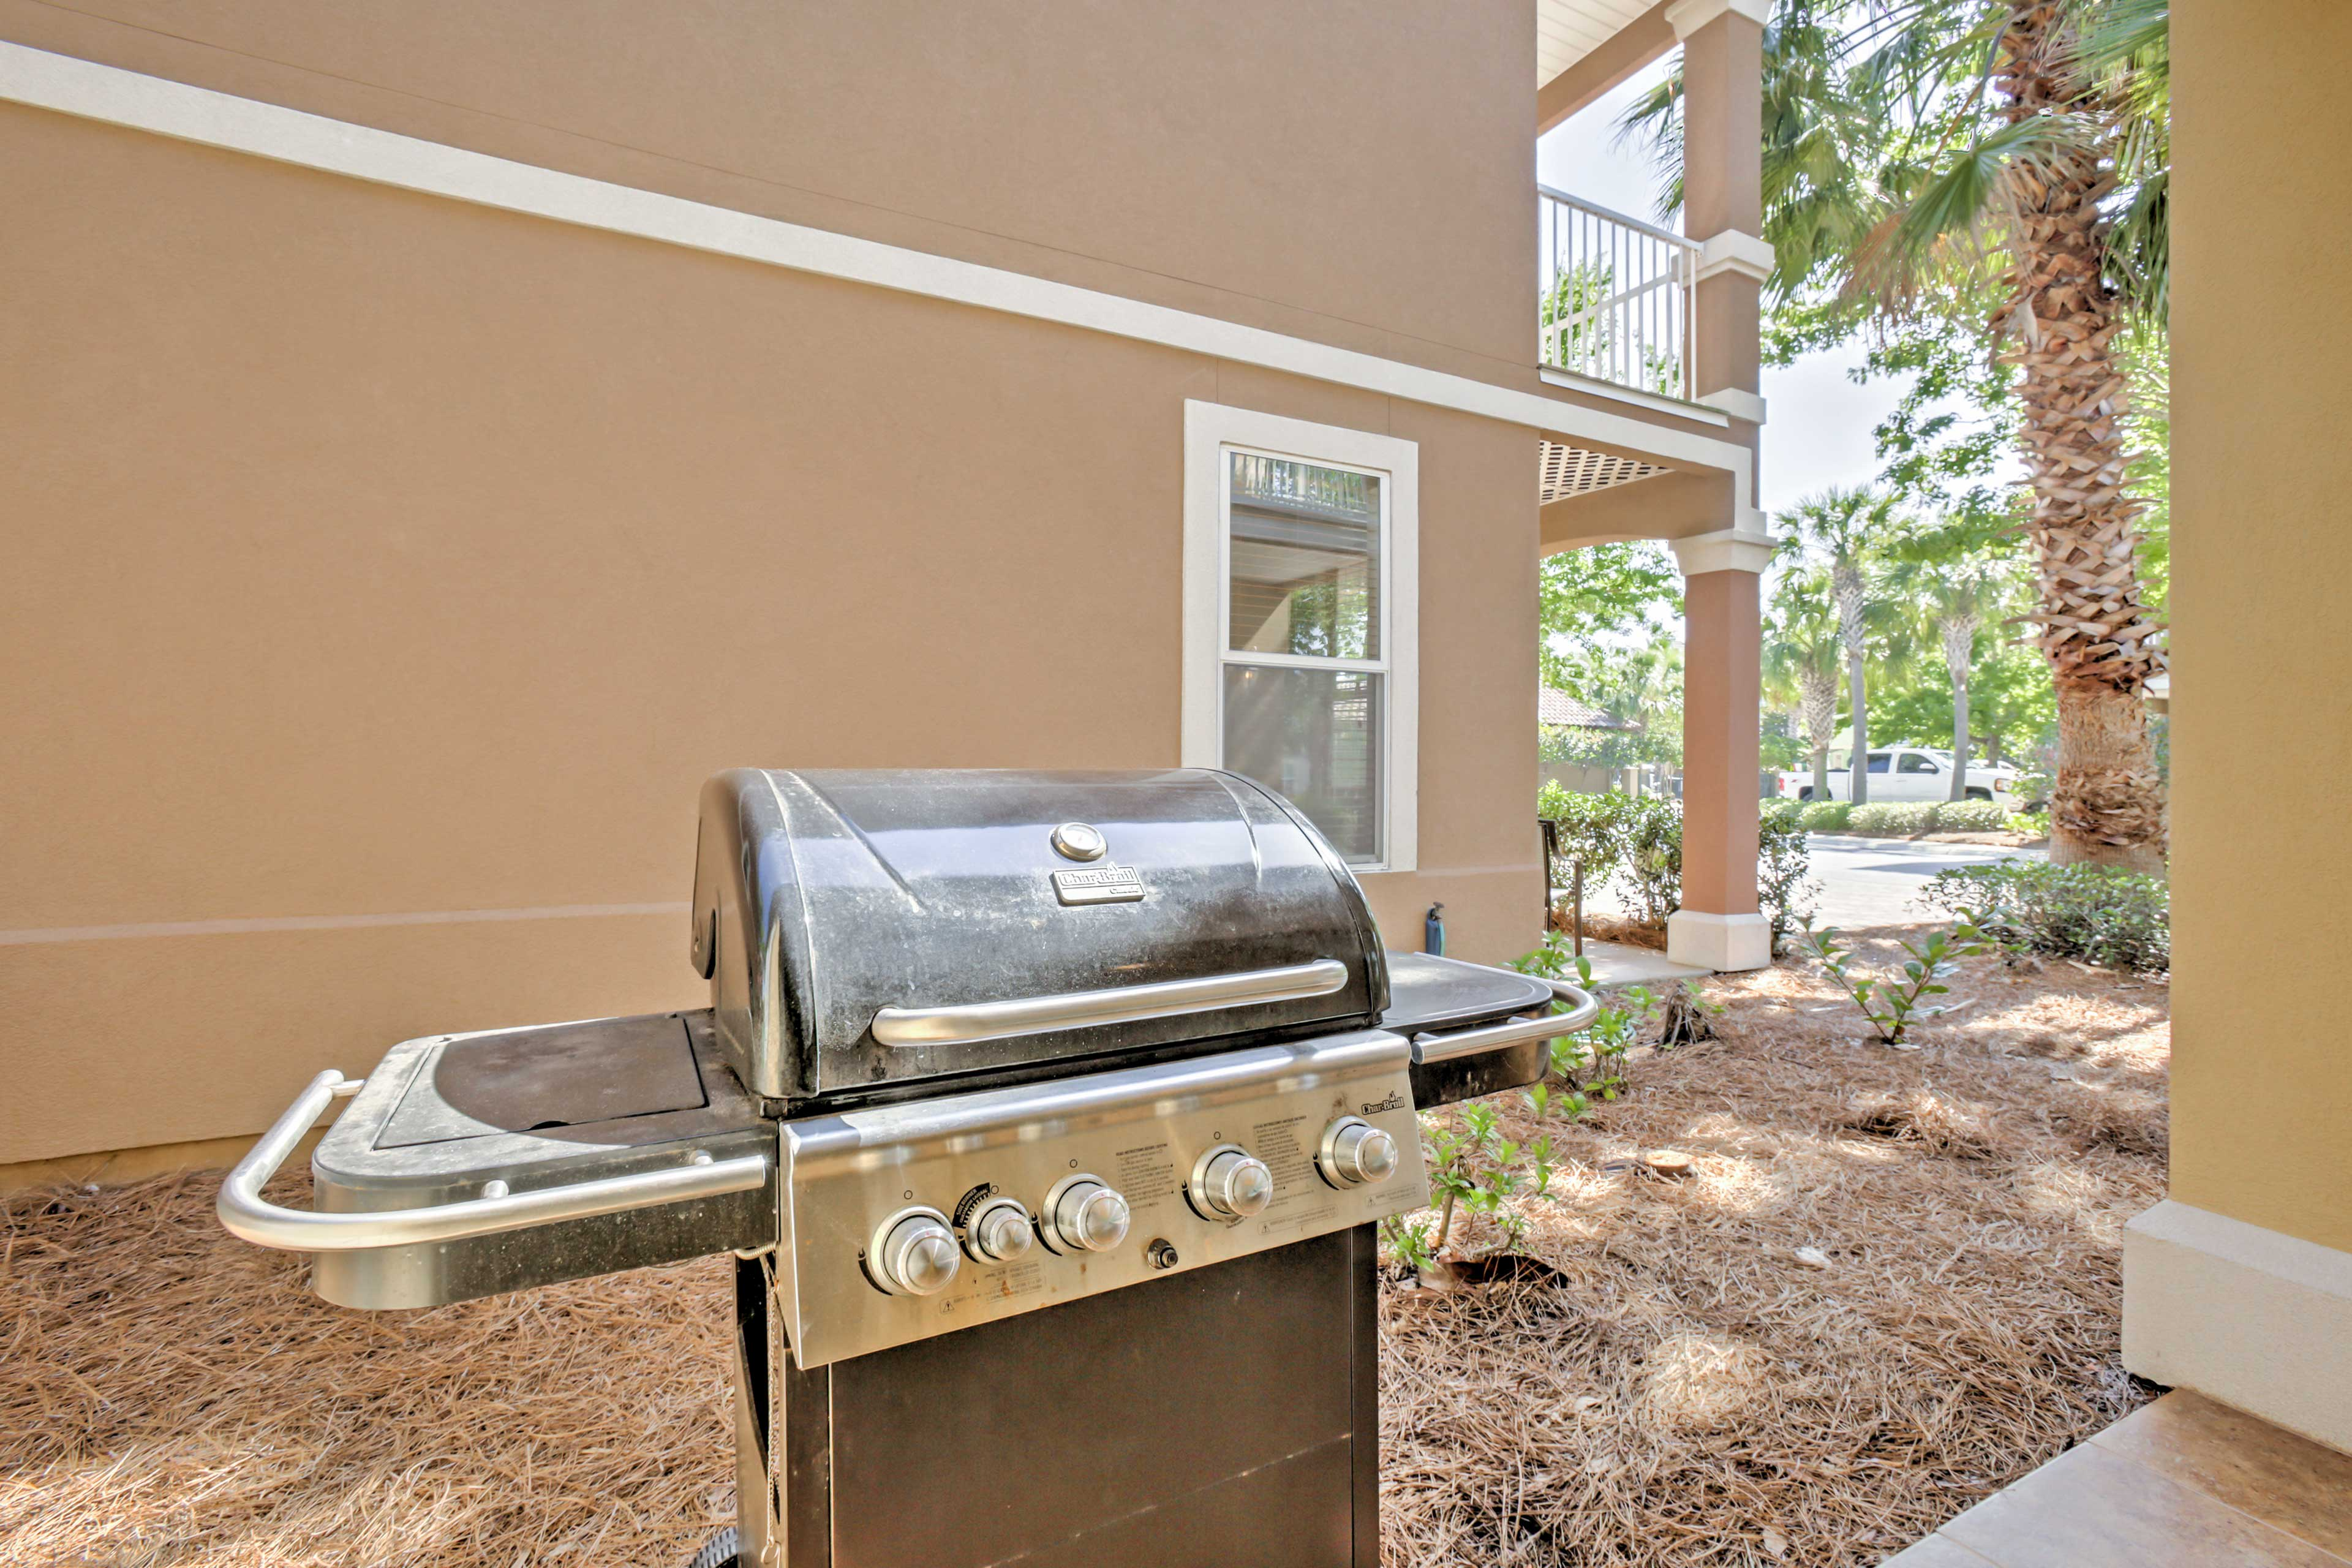 Utilize the outdoor grill at the house.